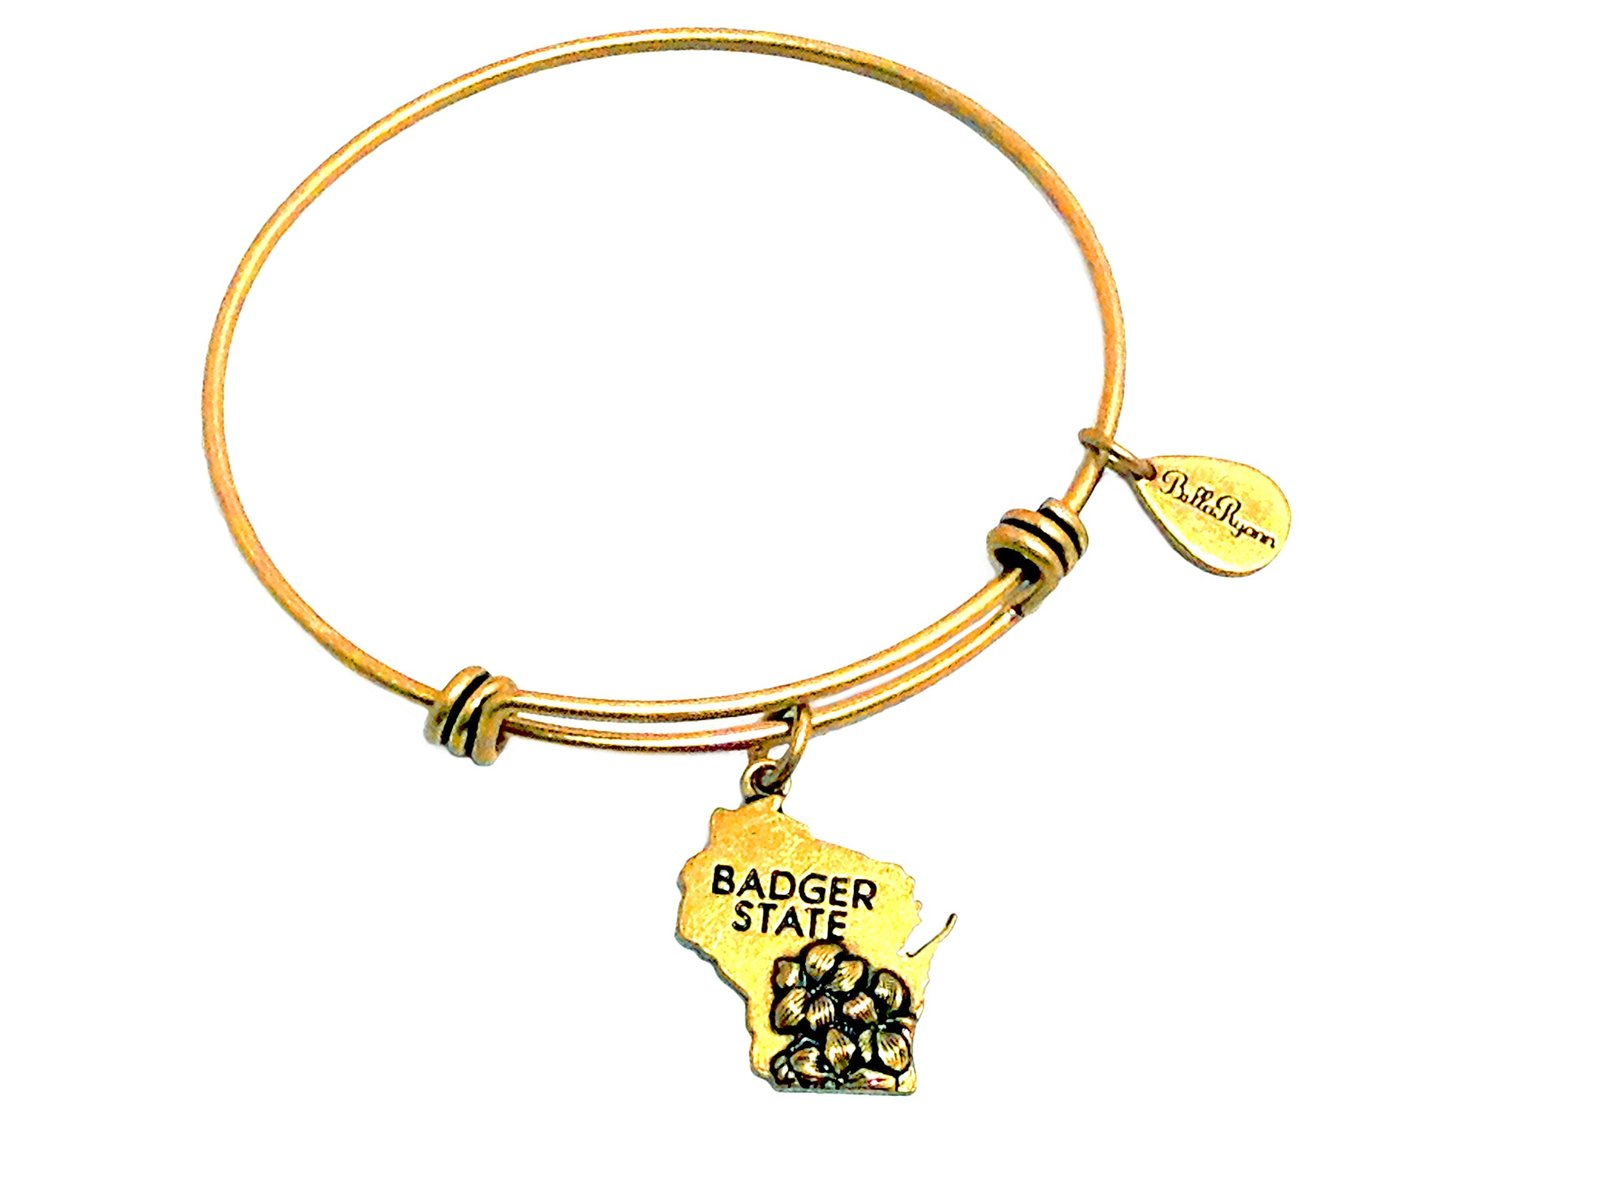 State of Wisconsin Charm Bangle Bracelet